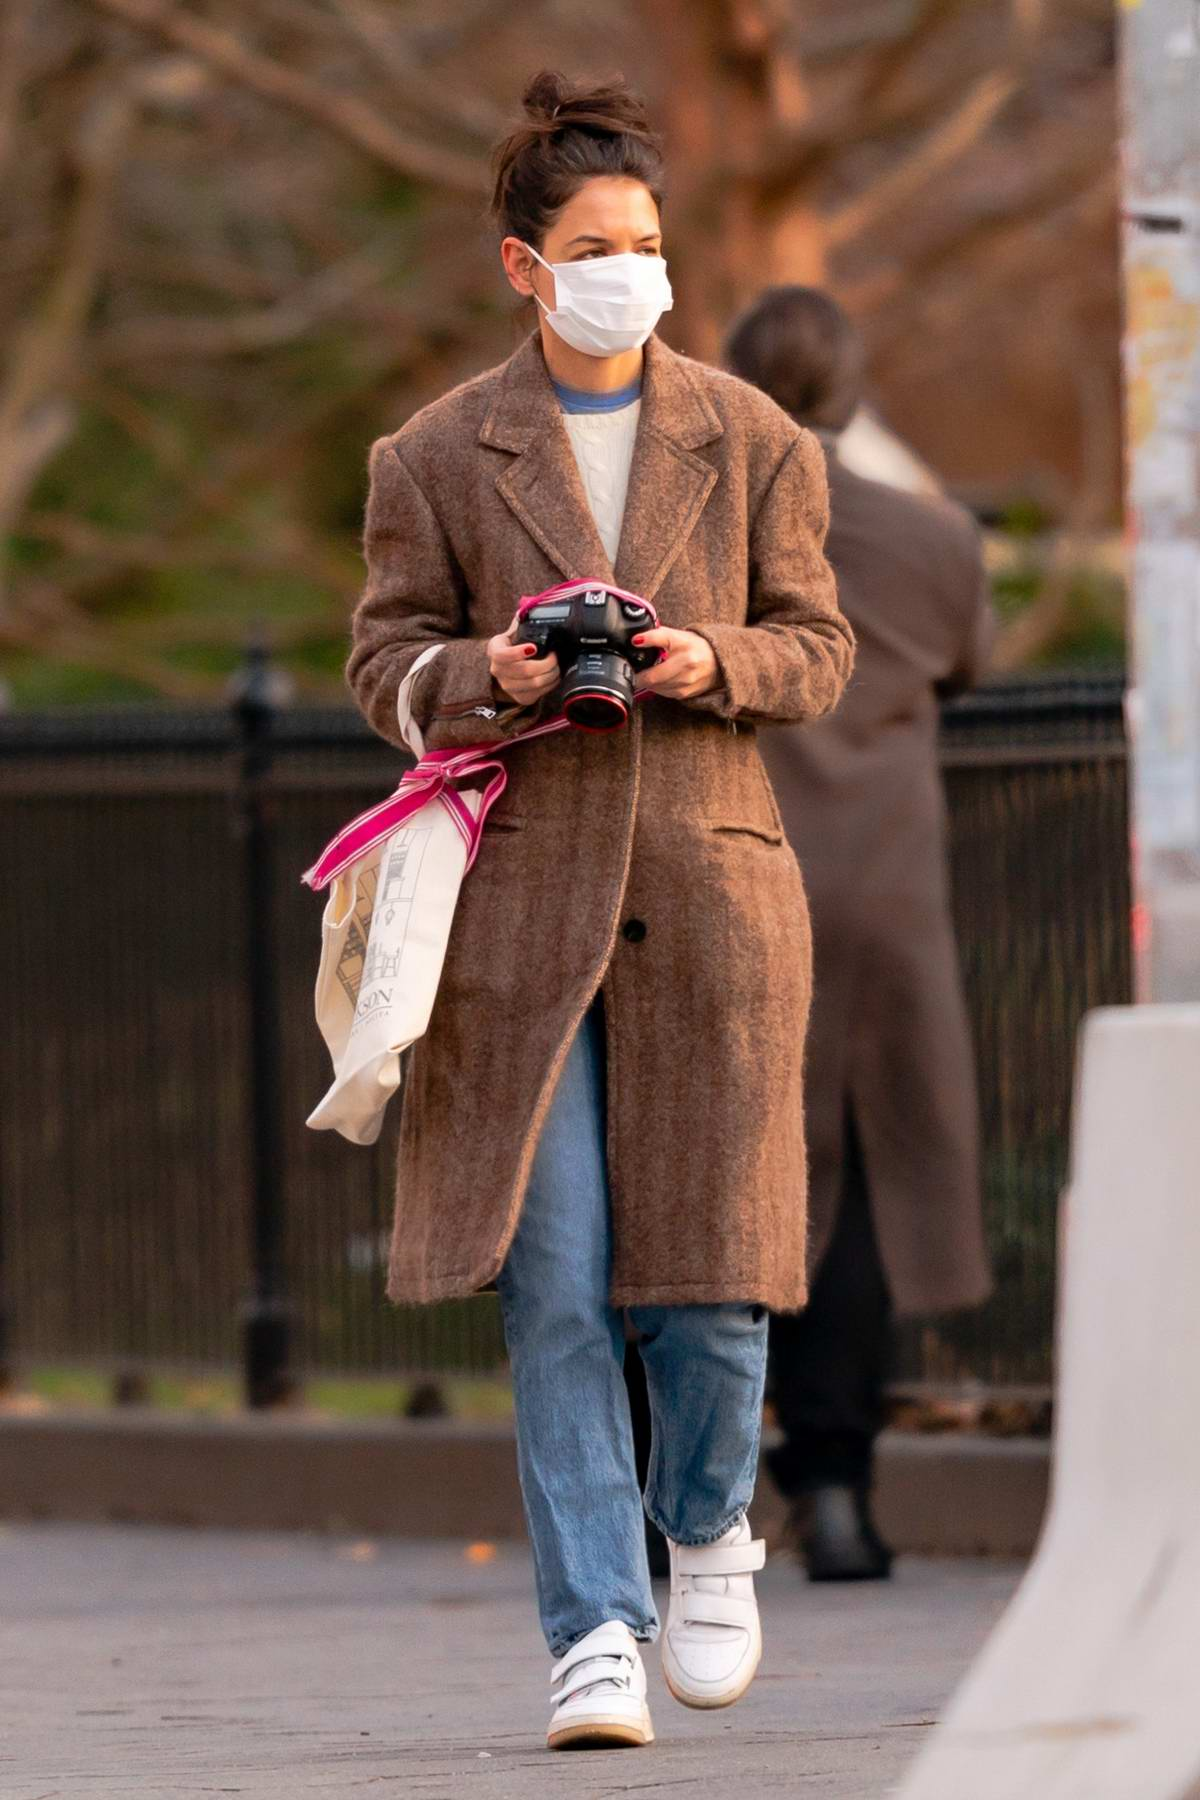 Katie Holmes takes some photographs while visiting the Washington Square Park in New York City